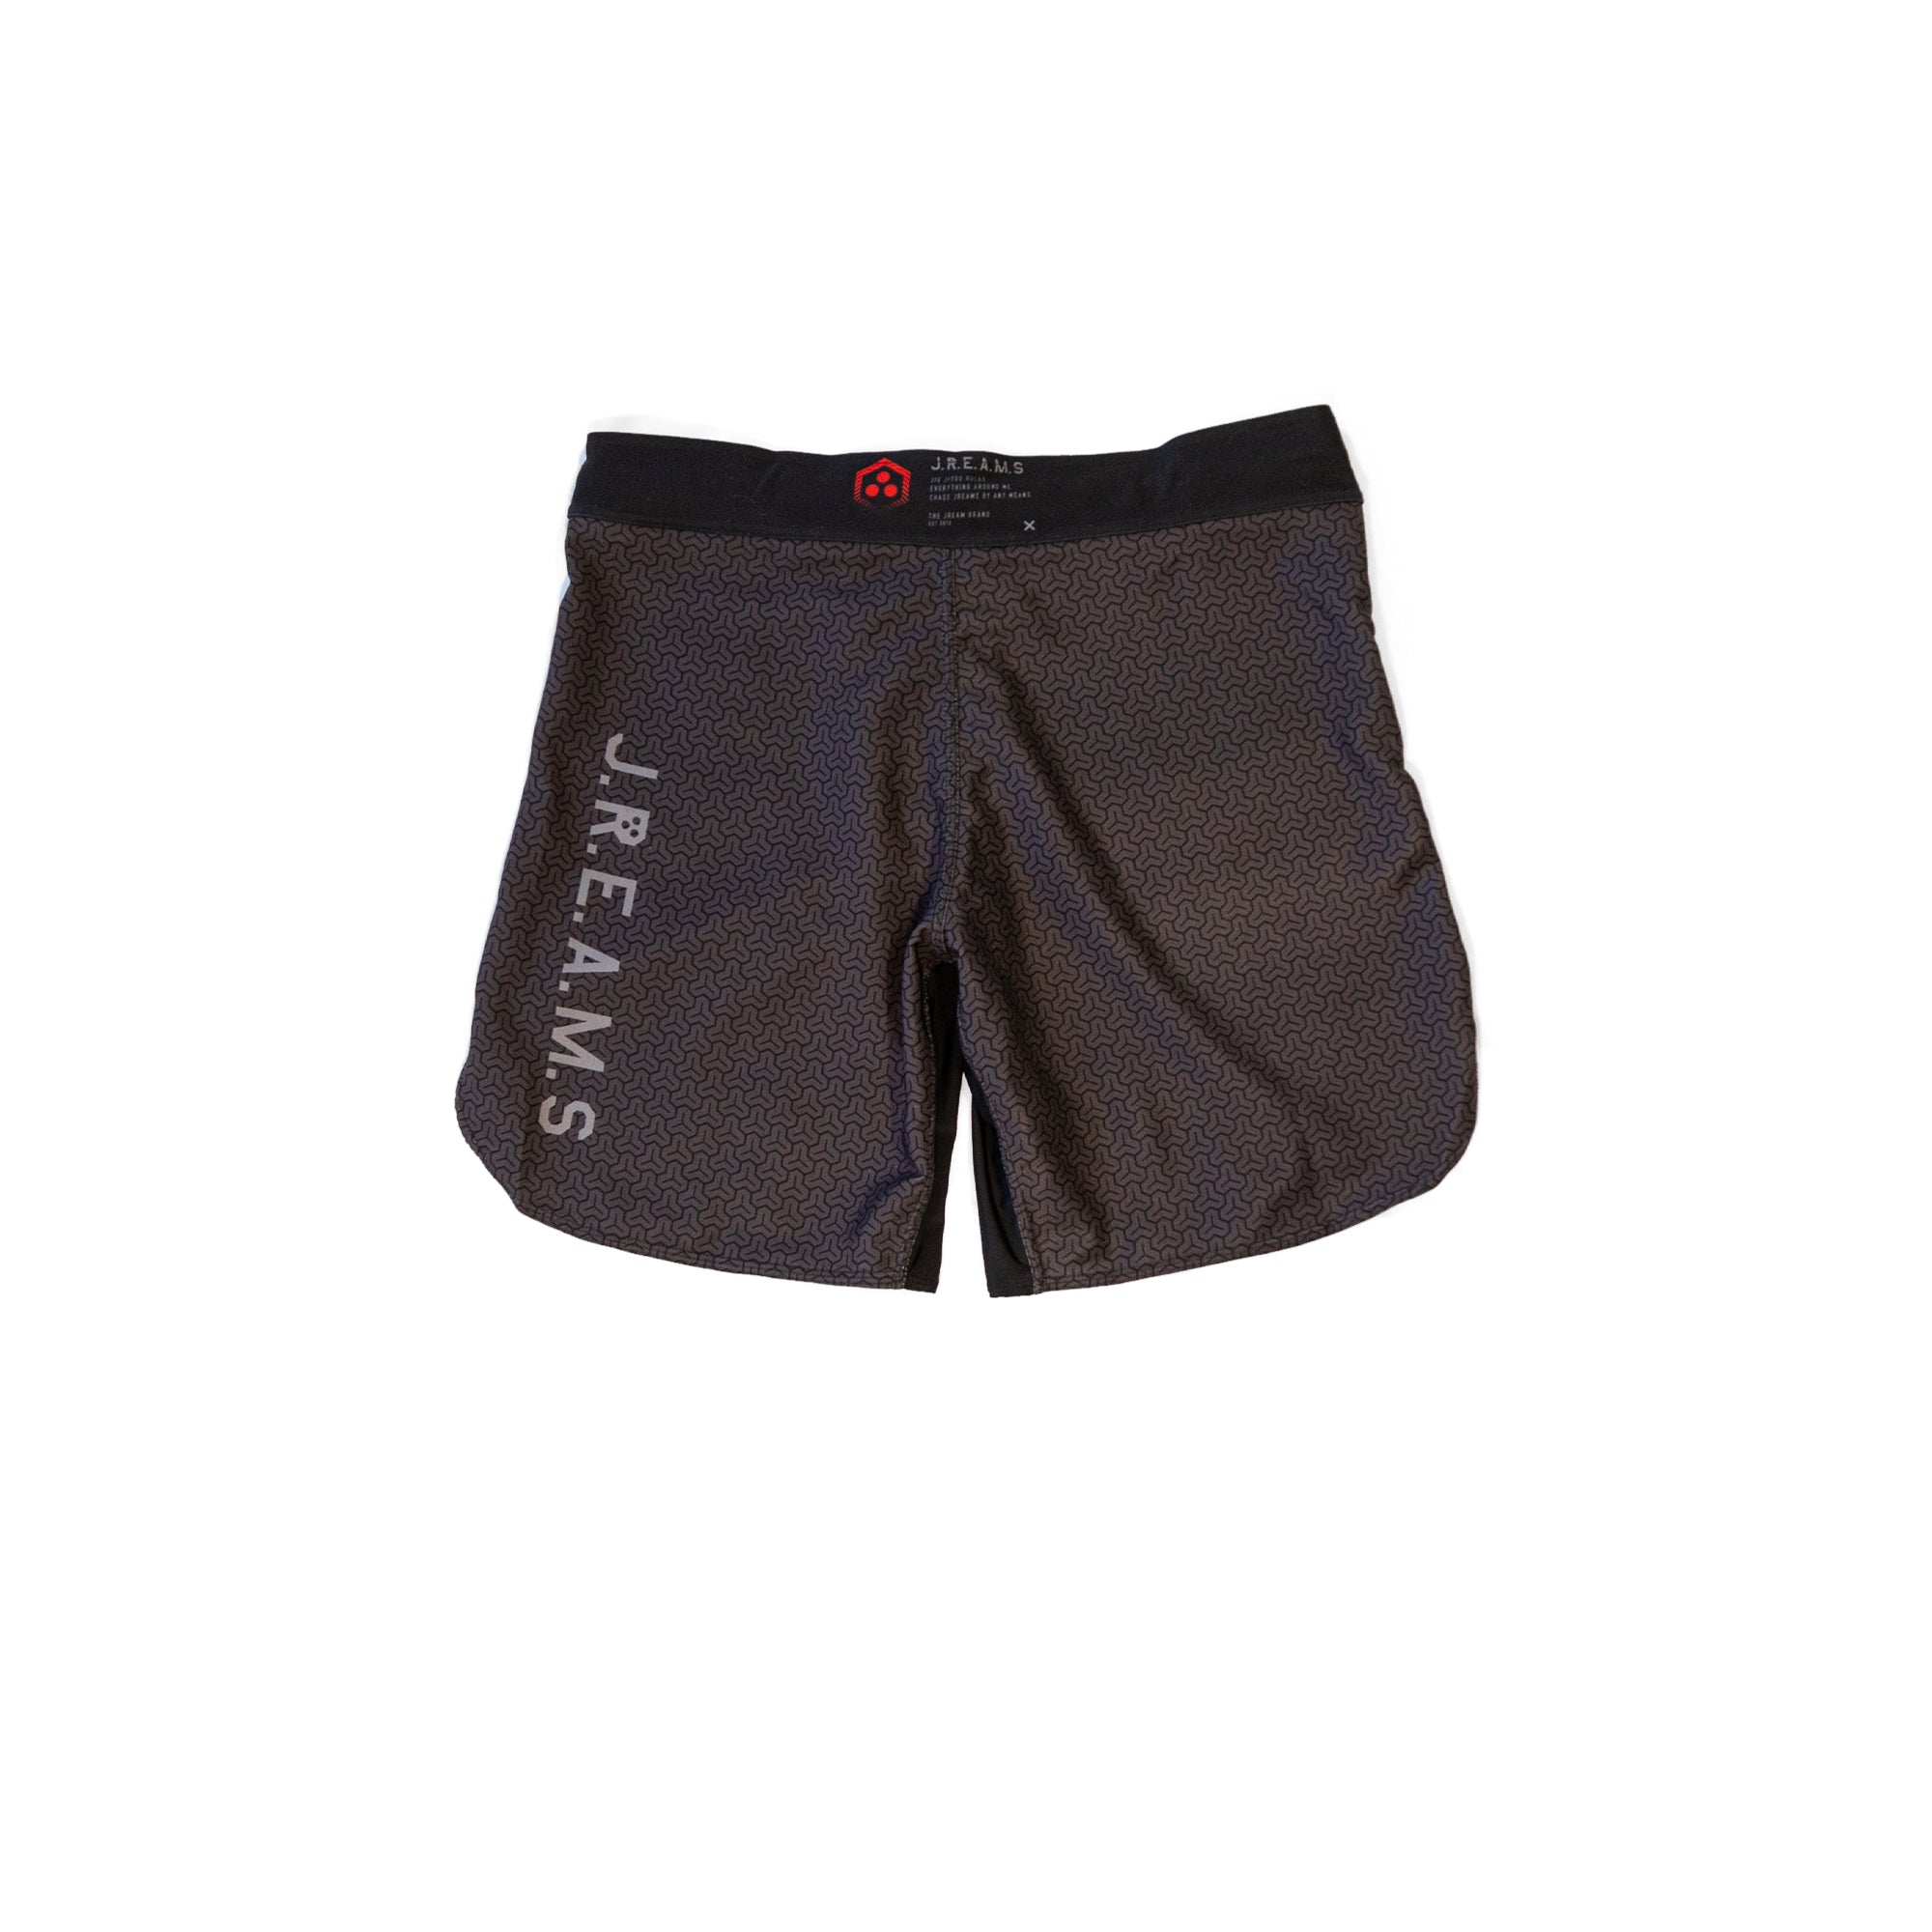 Issue: 01 Grappler Shorts